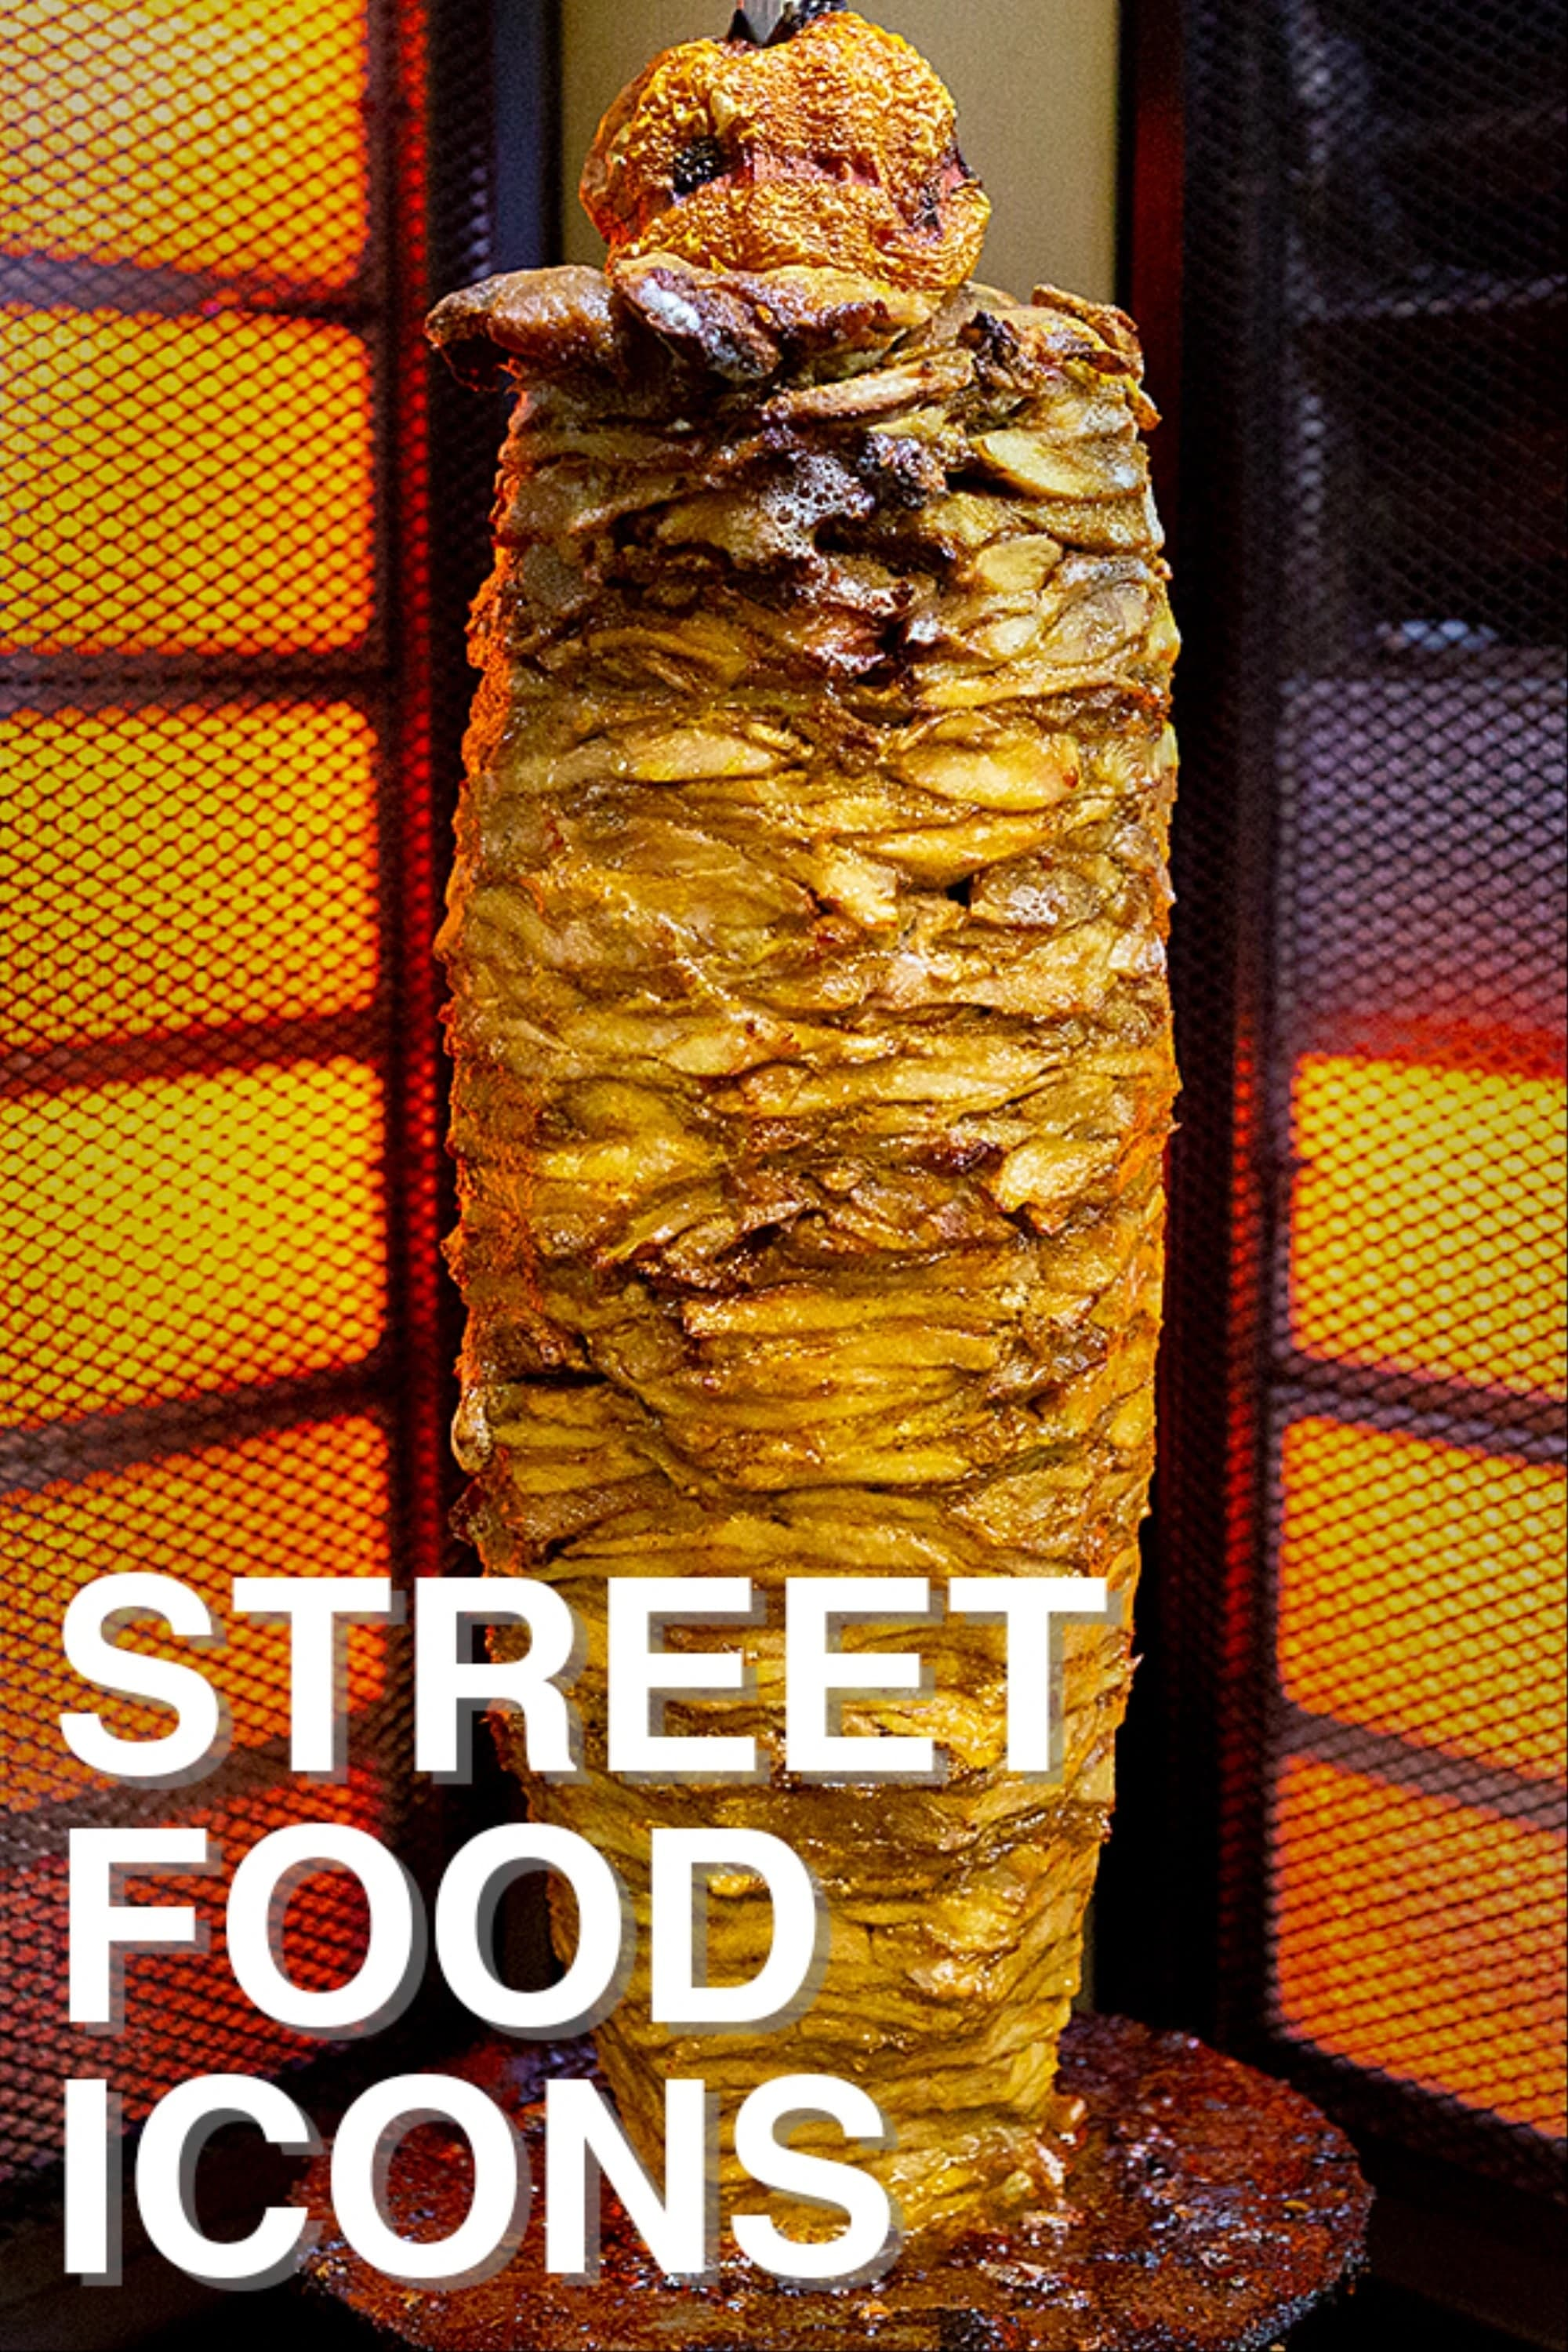 Street Food Icons TV Shows About New York City